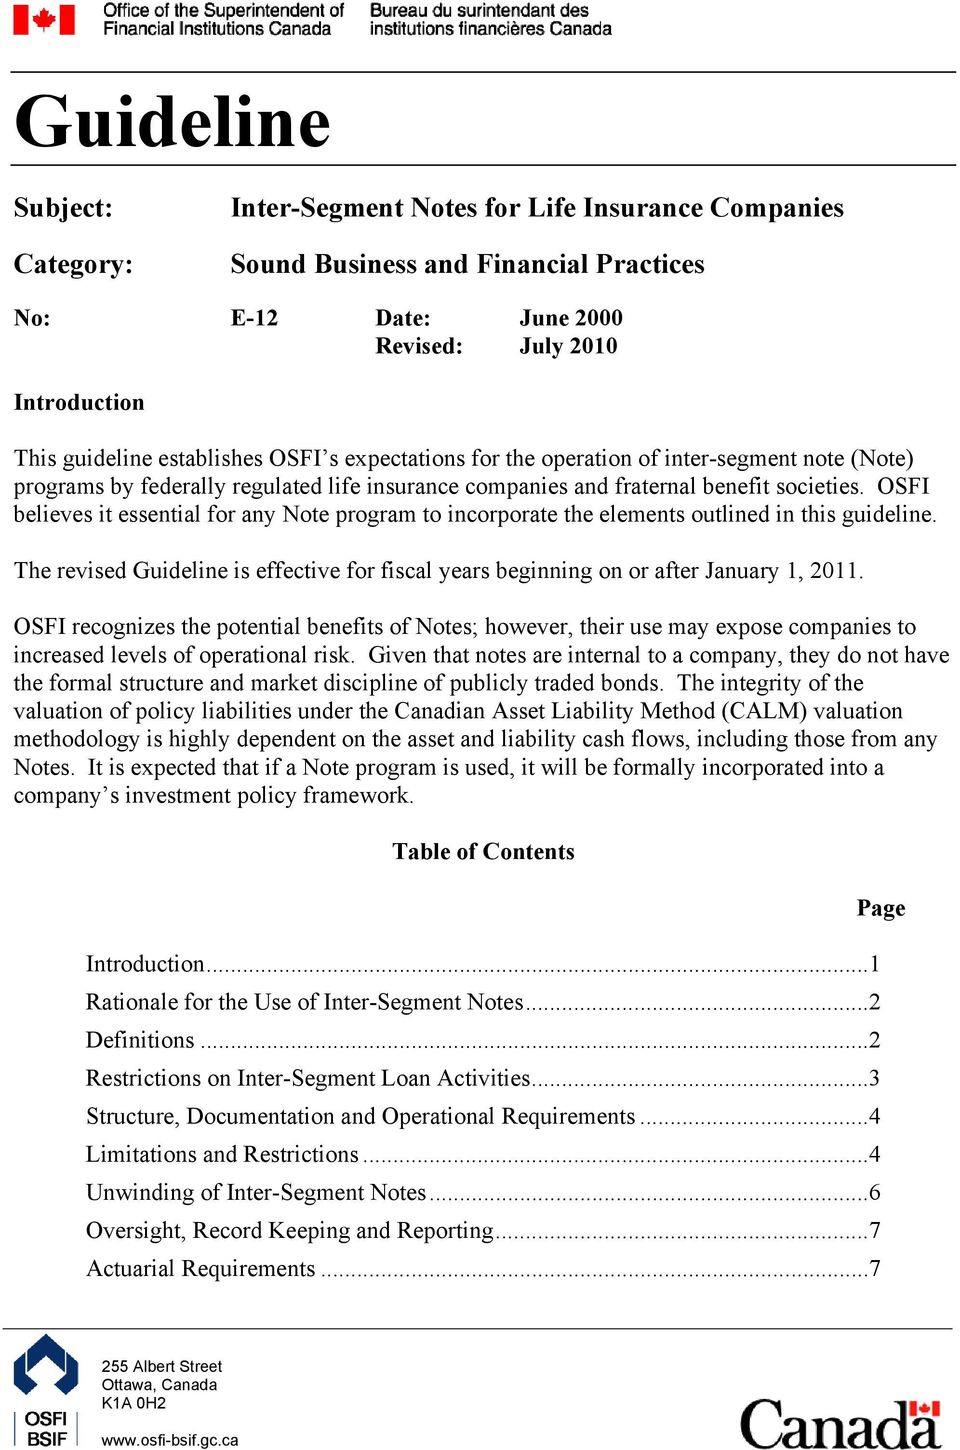 OSFI believes it essential for any Note program to incorporate the elements outlined in this guideline. The revised Guideline is effective for fiscal years beginning on or after January 1, 2011.